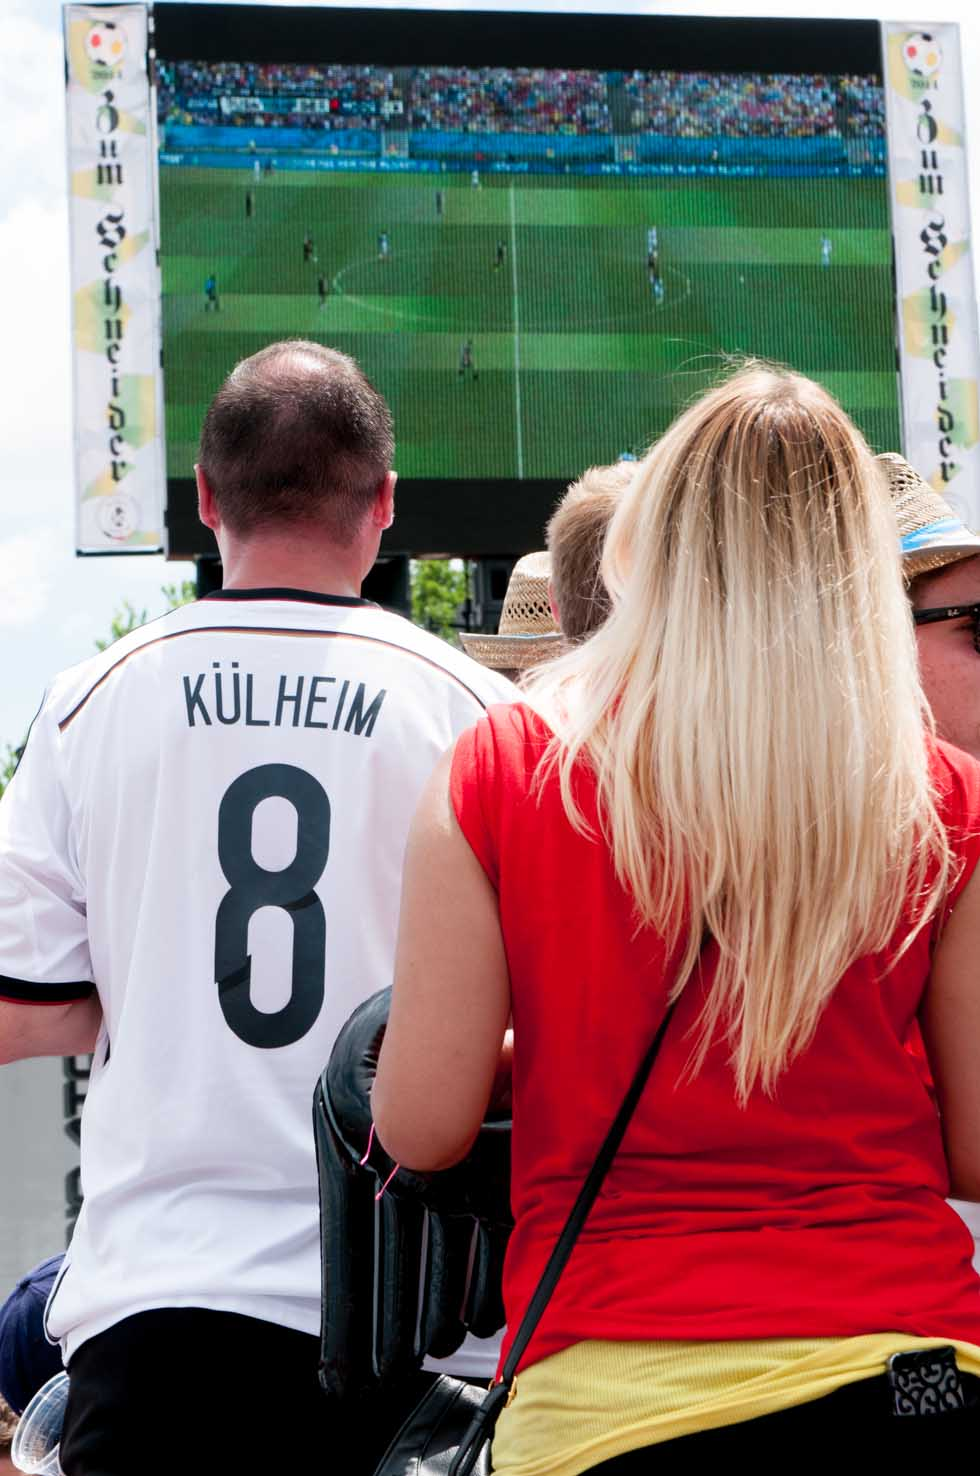 zum-schneider-nyc-2014-world-cup-germany-usa-0367.jpg